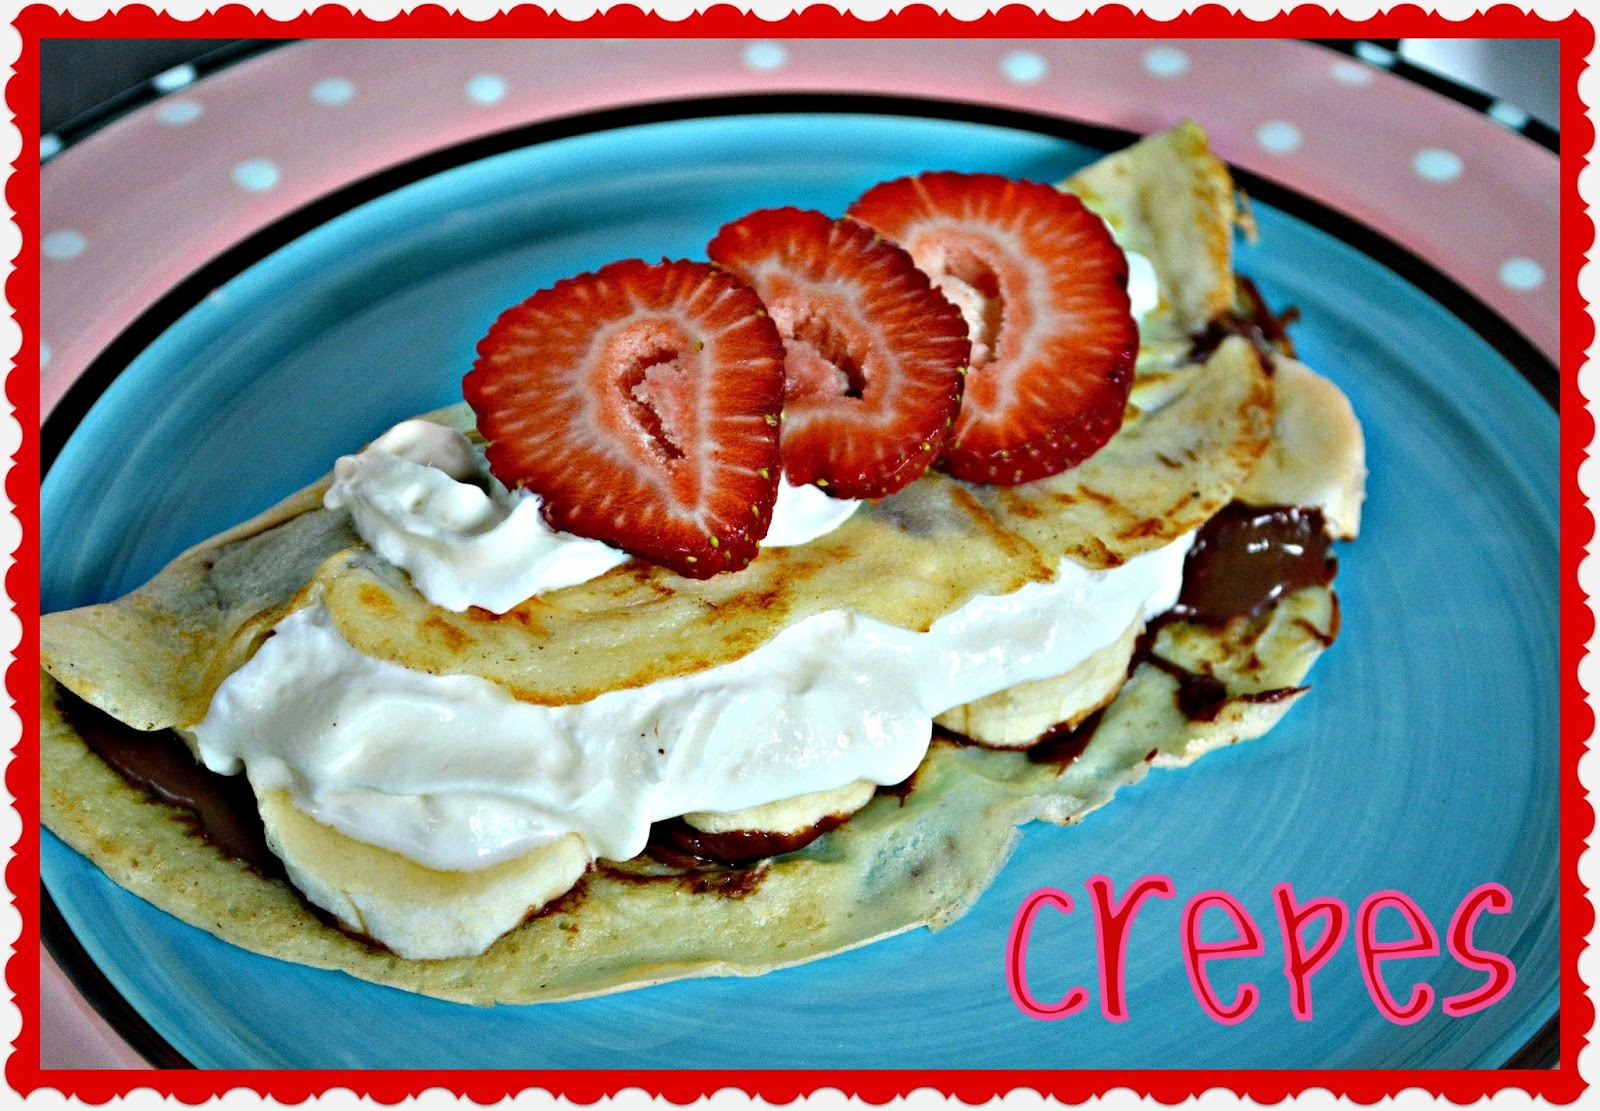 Strawberry And Nutella Banana Crepes With Whipped Cream Hugs And Cookies Xoxo